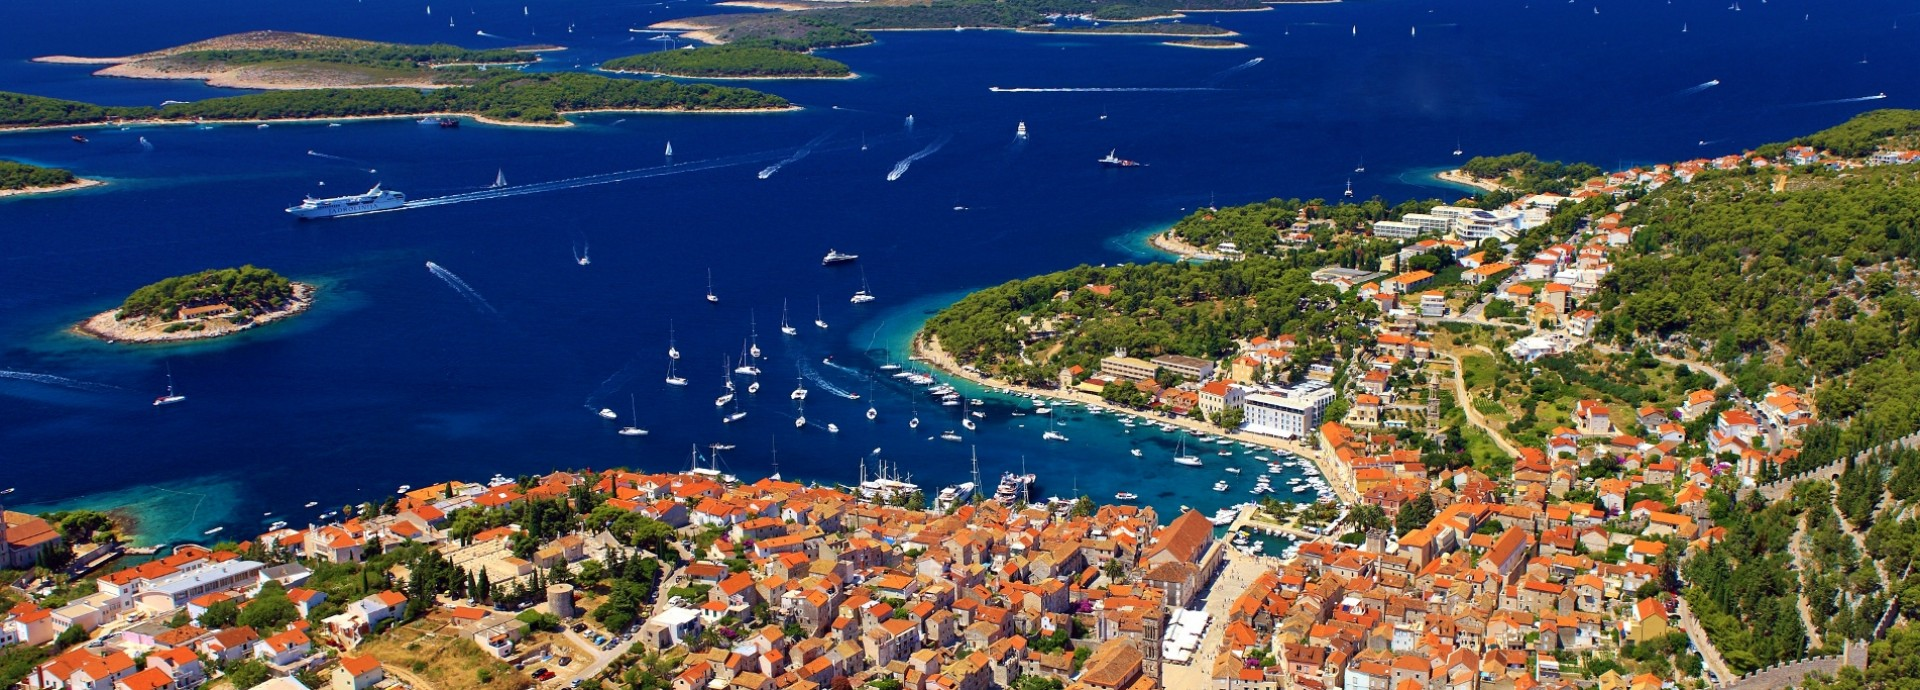 Hvar Panorama - Courtesy of the Croatian National Tourist Board